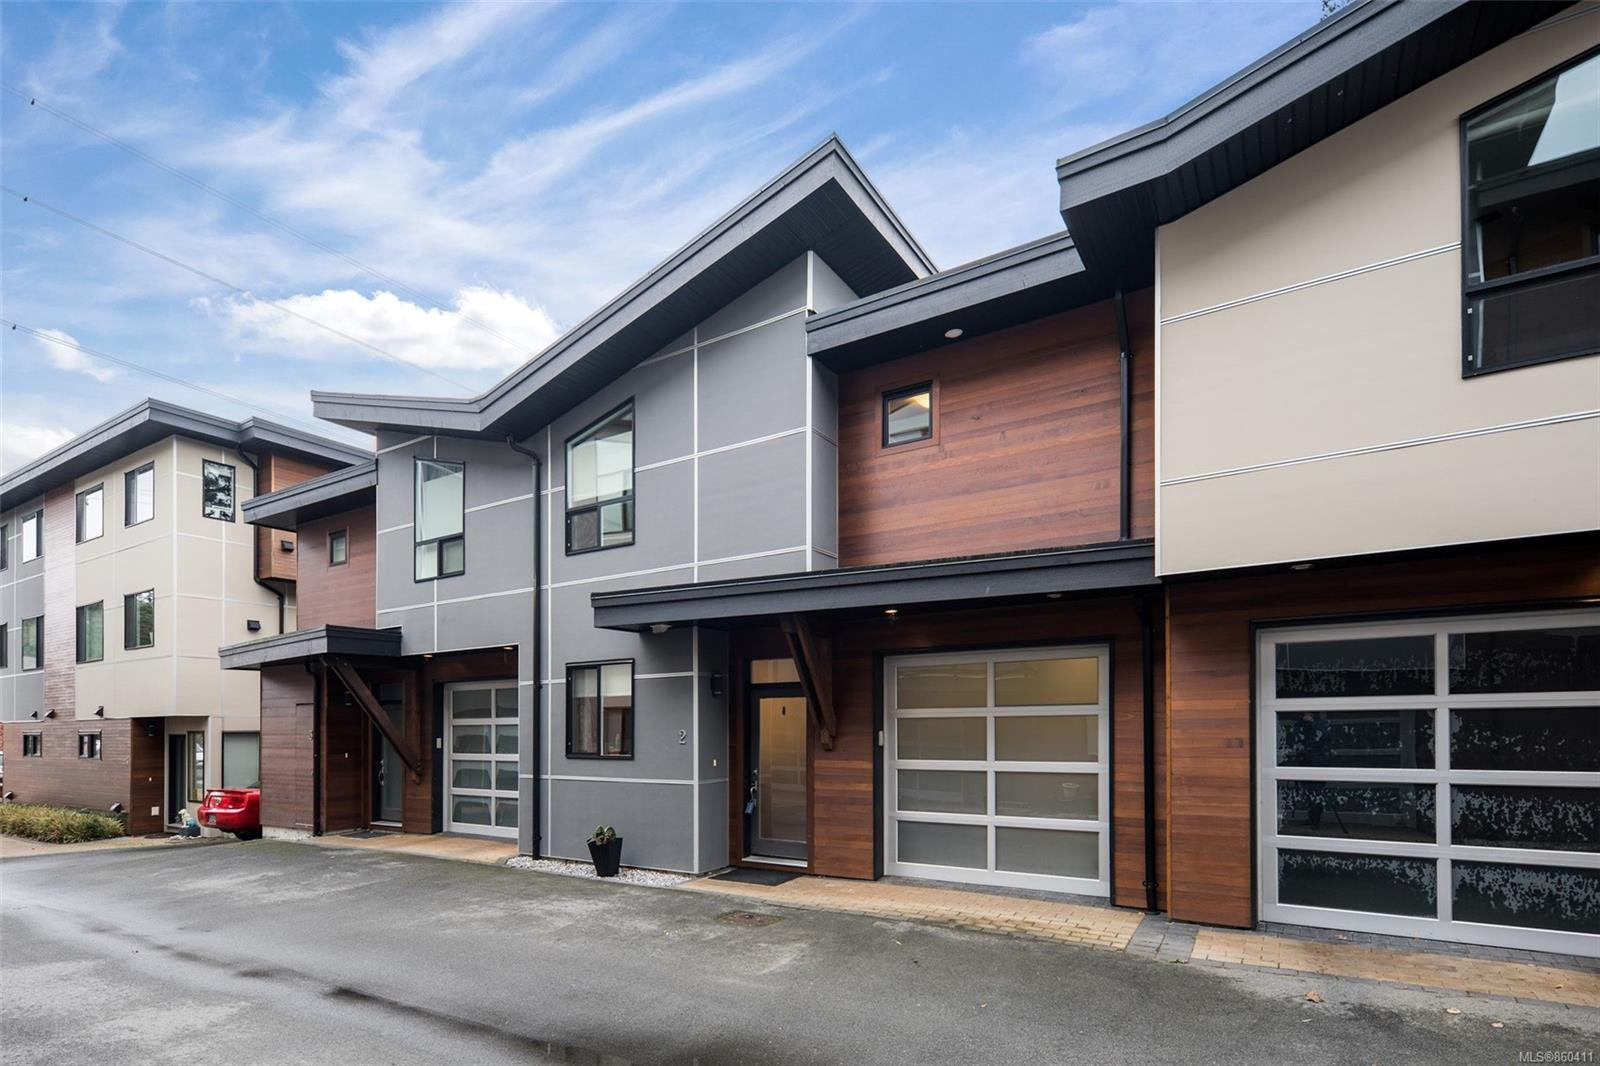 Main Photo: 2 2311 Watkiss Way in : VR Hospital Row/Townhouse for sale (View Royal)  : MLS®# 860411